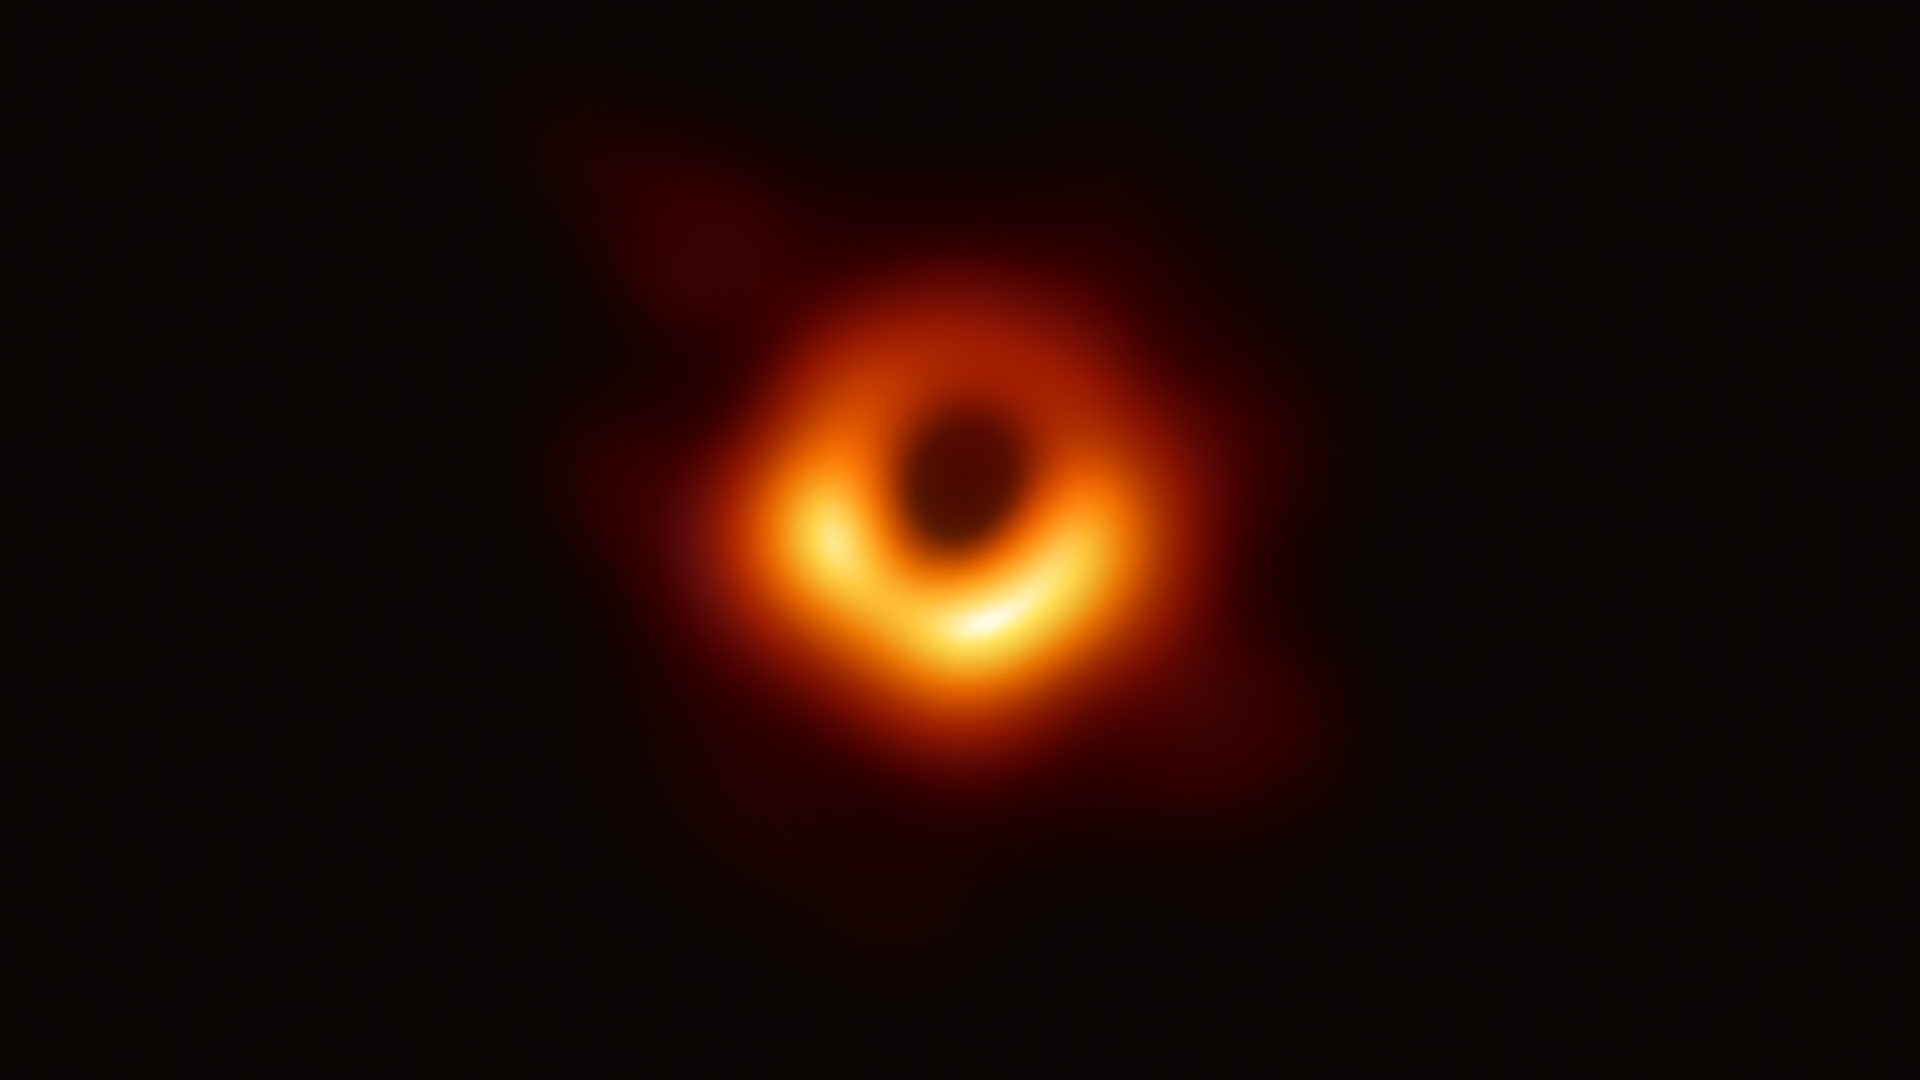 - Black hole - Do black holes move? Astronomers say a massive one is speeding through space as we speak